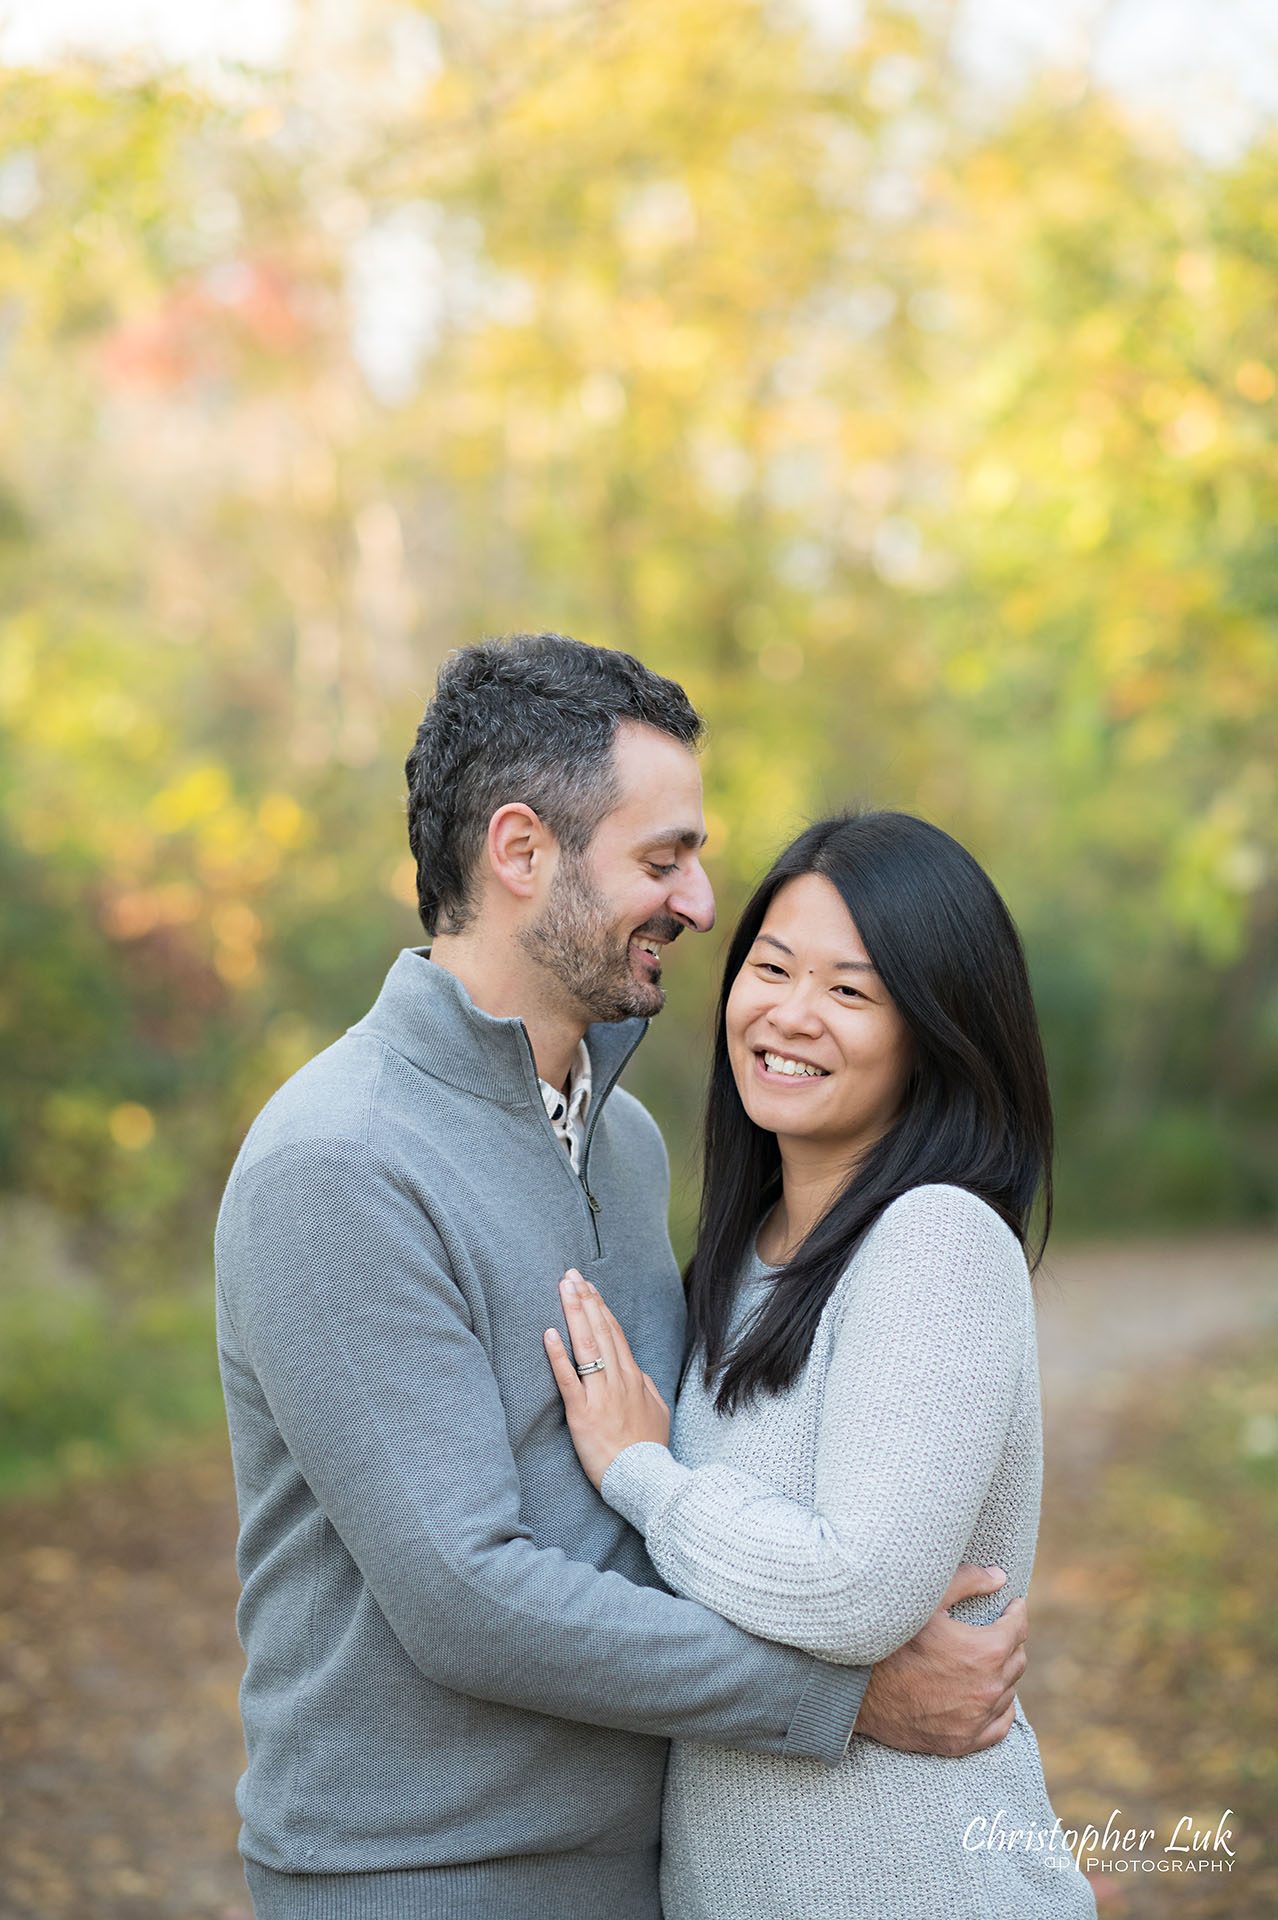 Christopher Luk Family Photographer Toronto Markham Unionville Autumn Fall Leaves Natural Candid Photojournalistic Father Dad Mother Mom Motherhood Fatherhood Husband Wife Couple Hug Smile Laugh